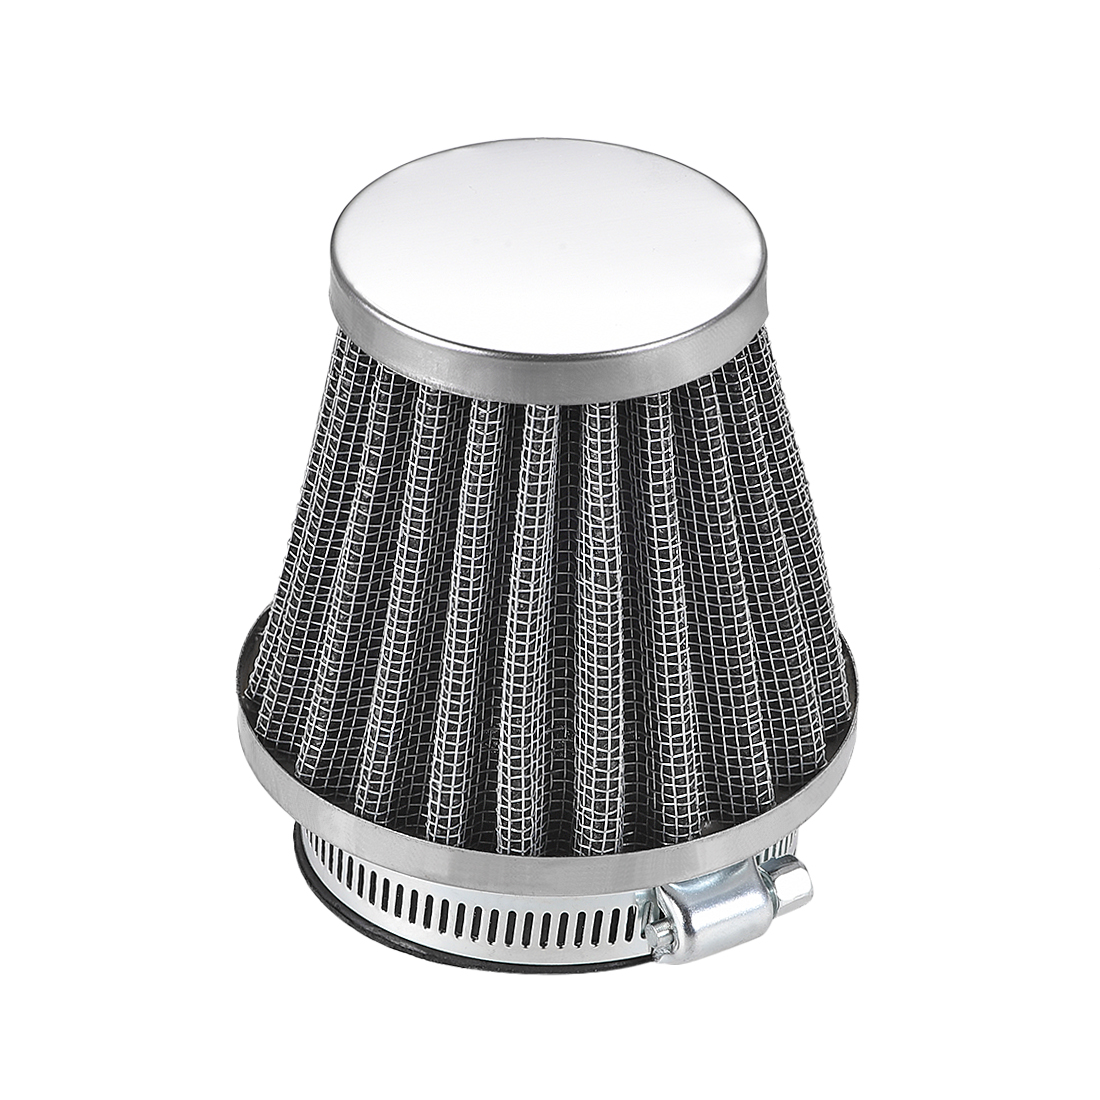 50mm Air Filter for 50cc 110cc 125cc 150cc 200cc gy6 Moped Scooter Atv Dirt Bike